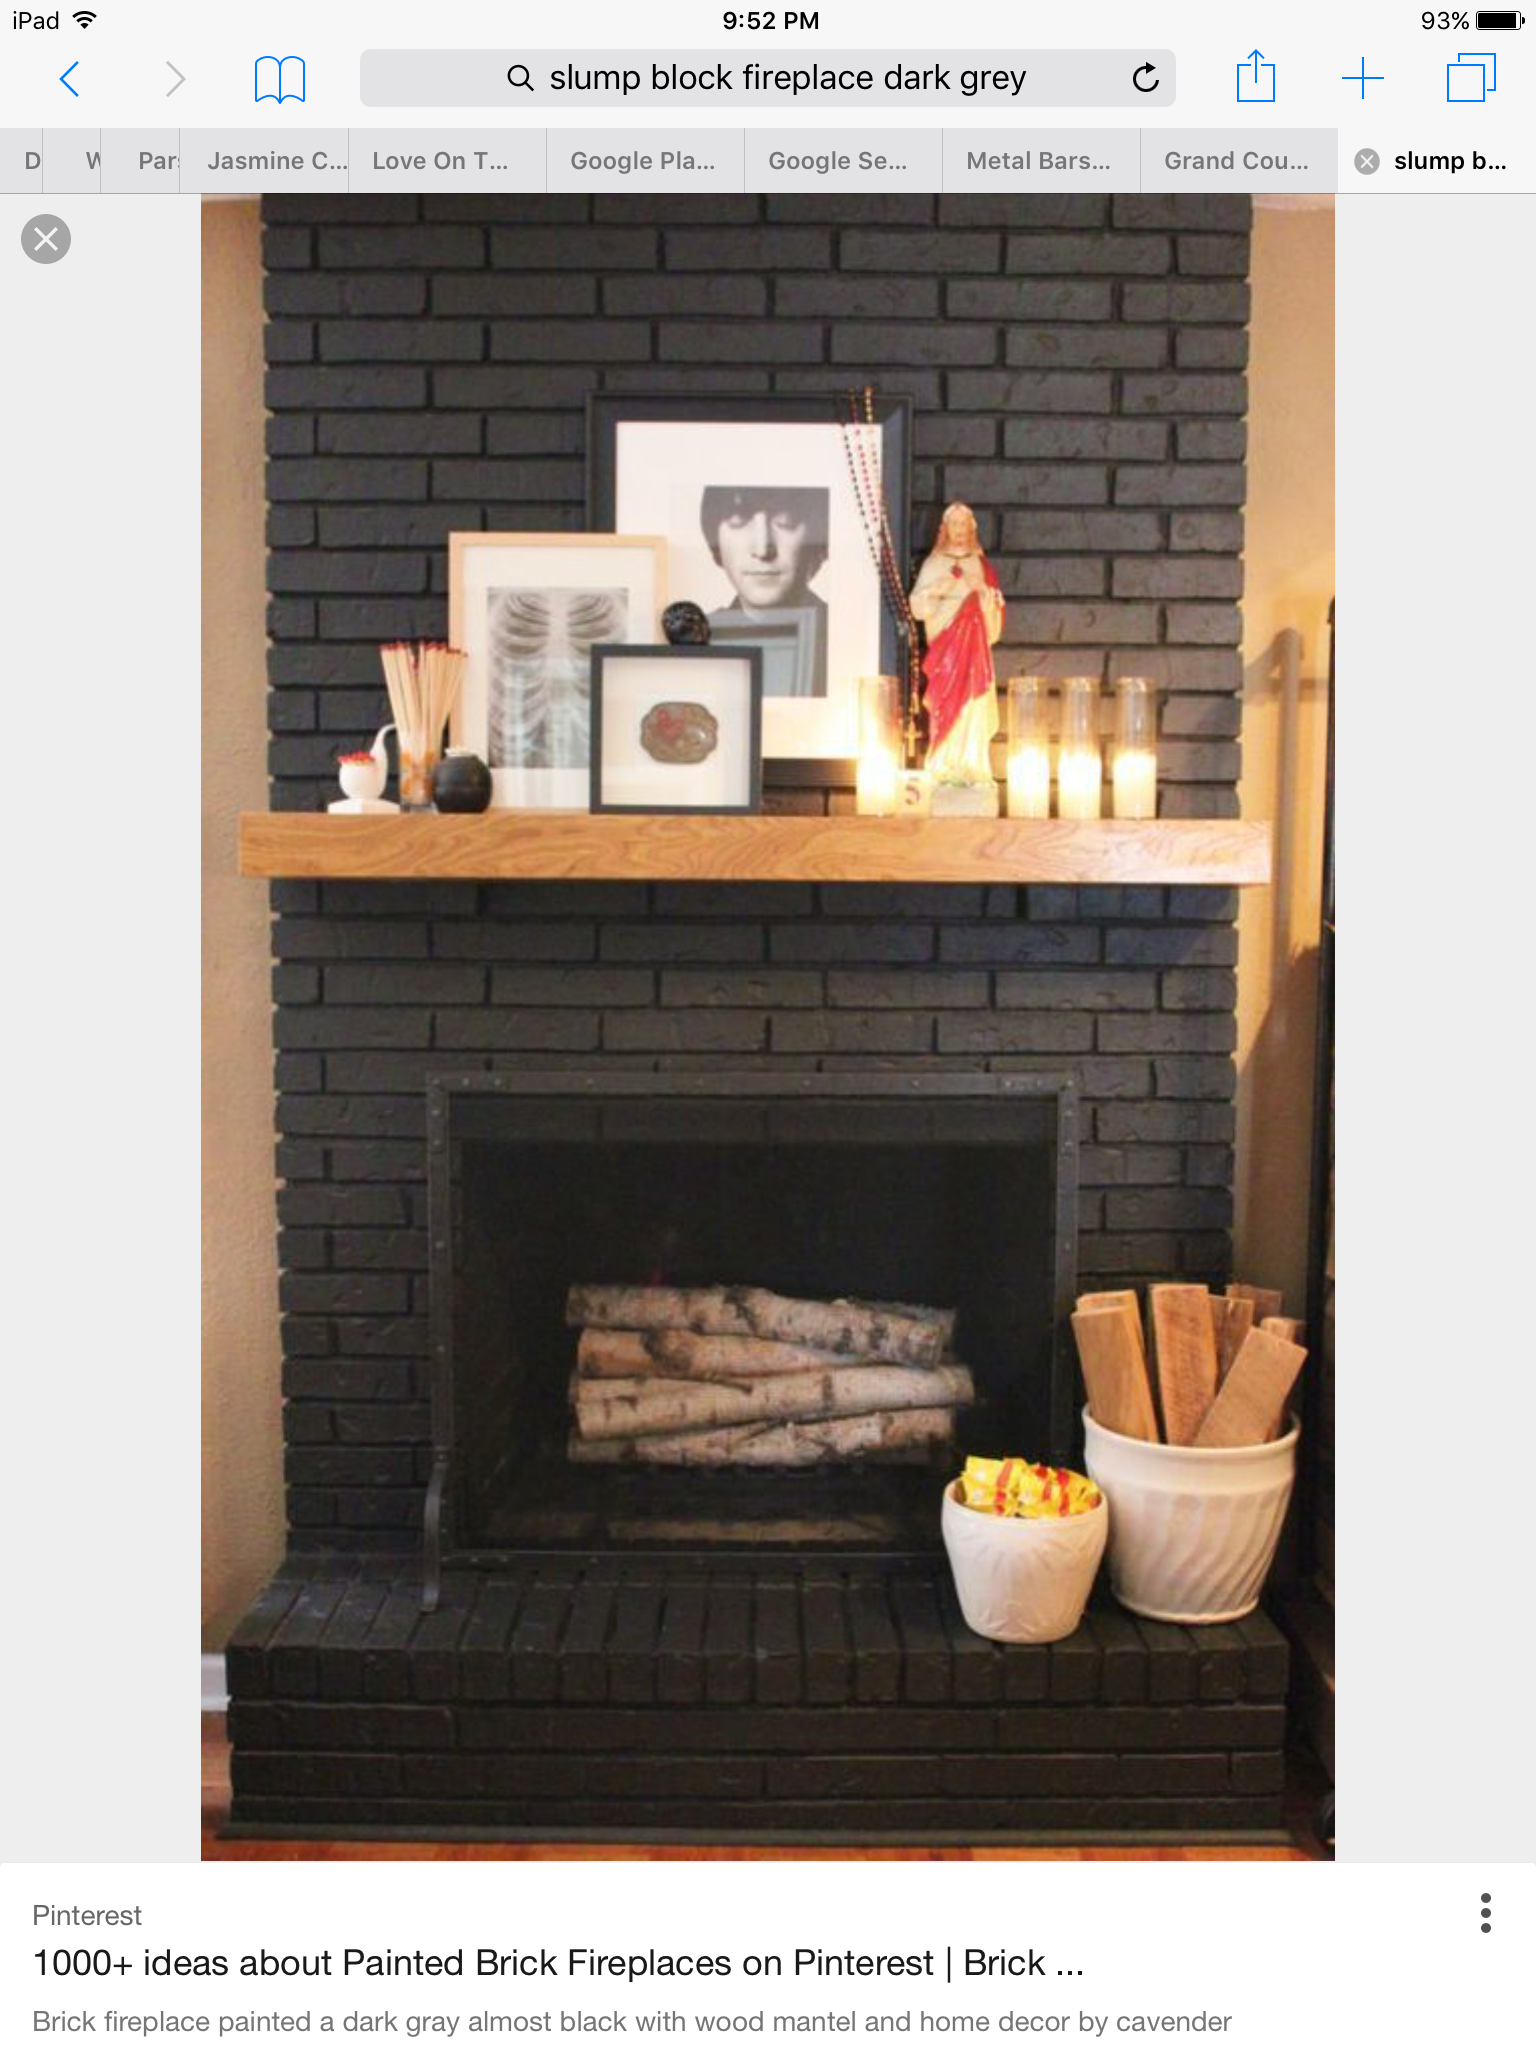 grey slump block fireplace for the home pinterest brick